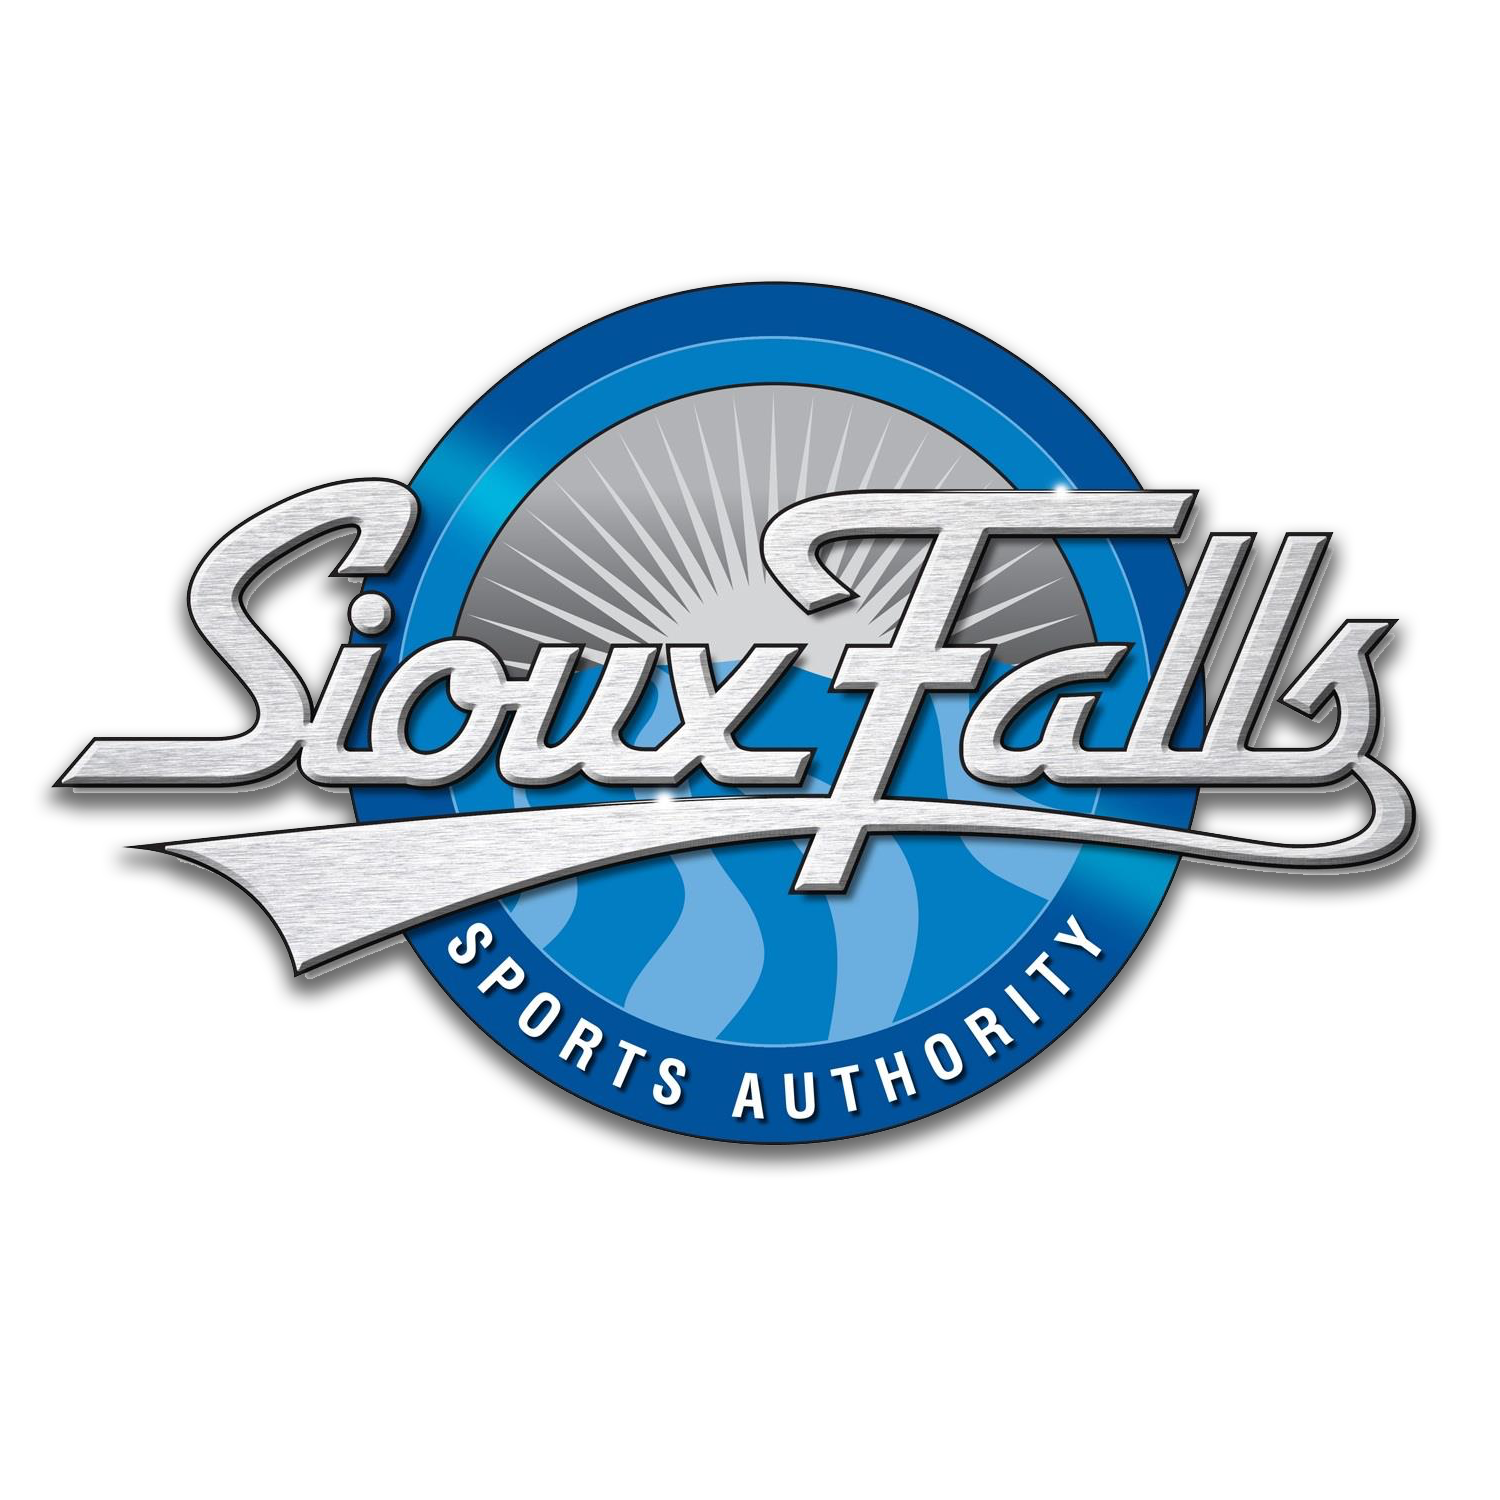 Sioux Falls Sports Authority